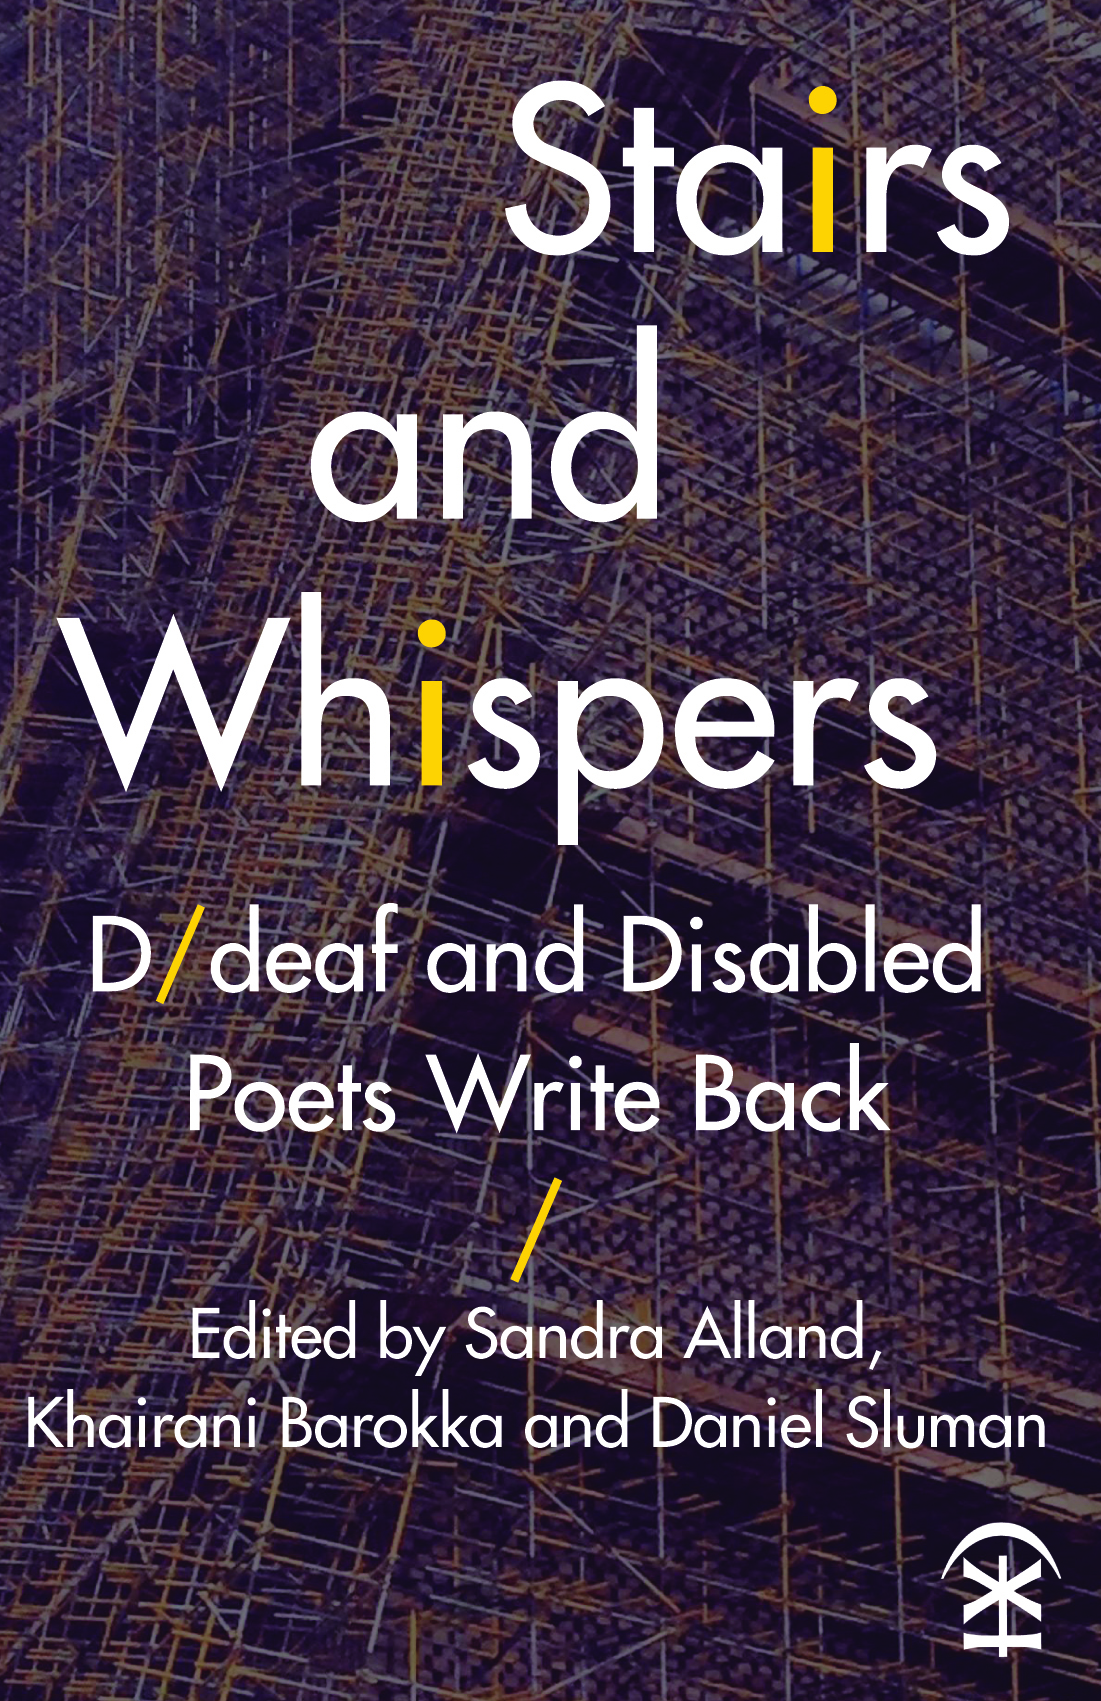 Stairs and Whispers COVER-2.jpg